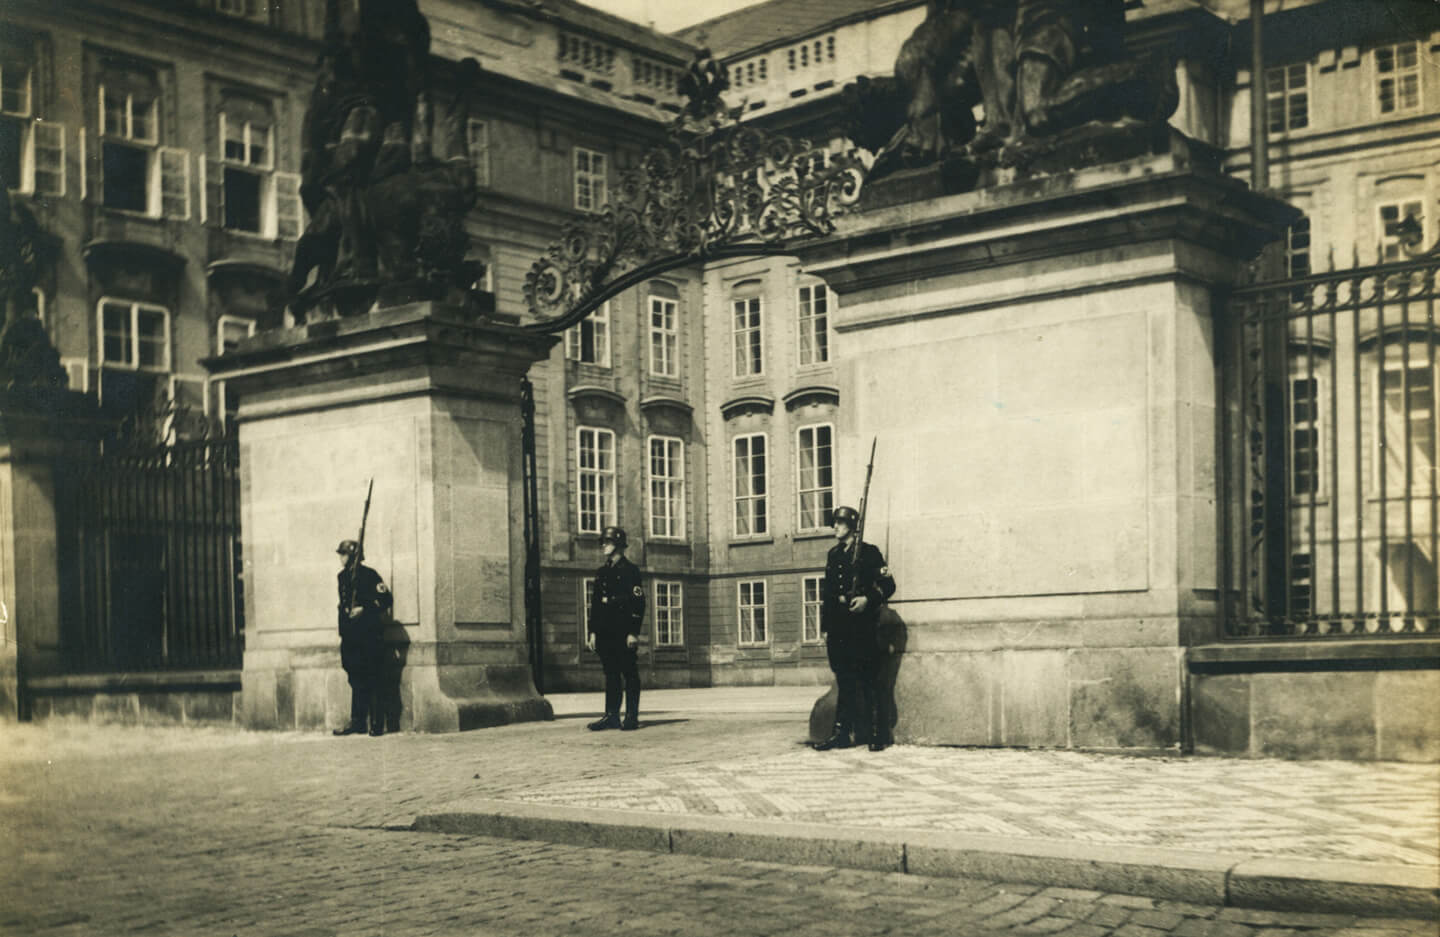 Three Guards with rifles guard a large building's front gate.